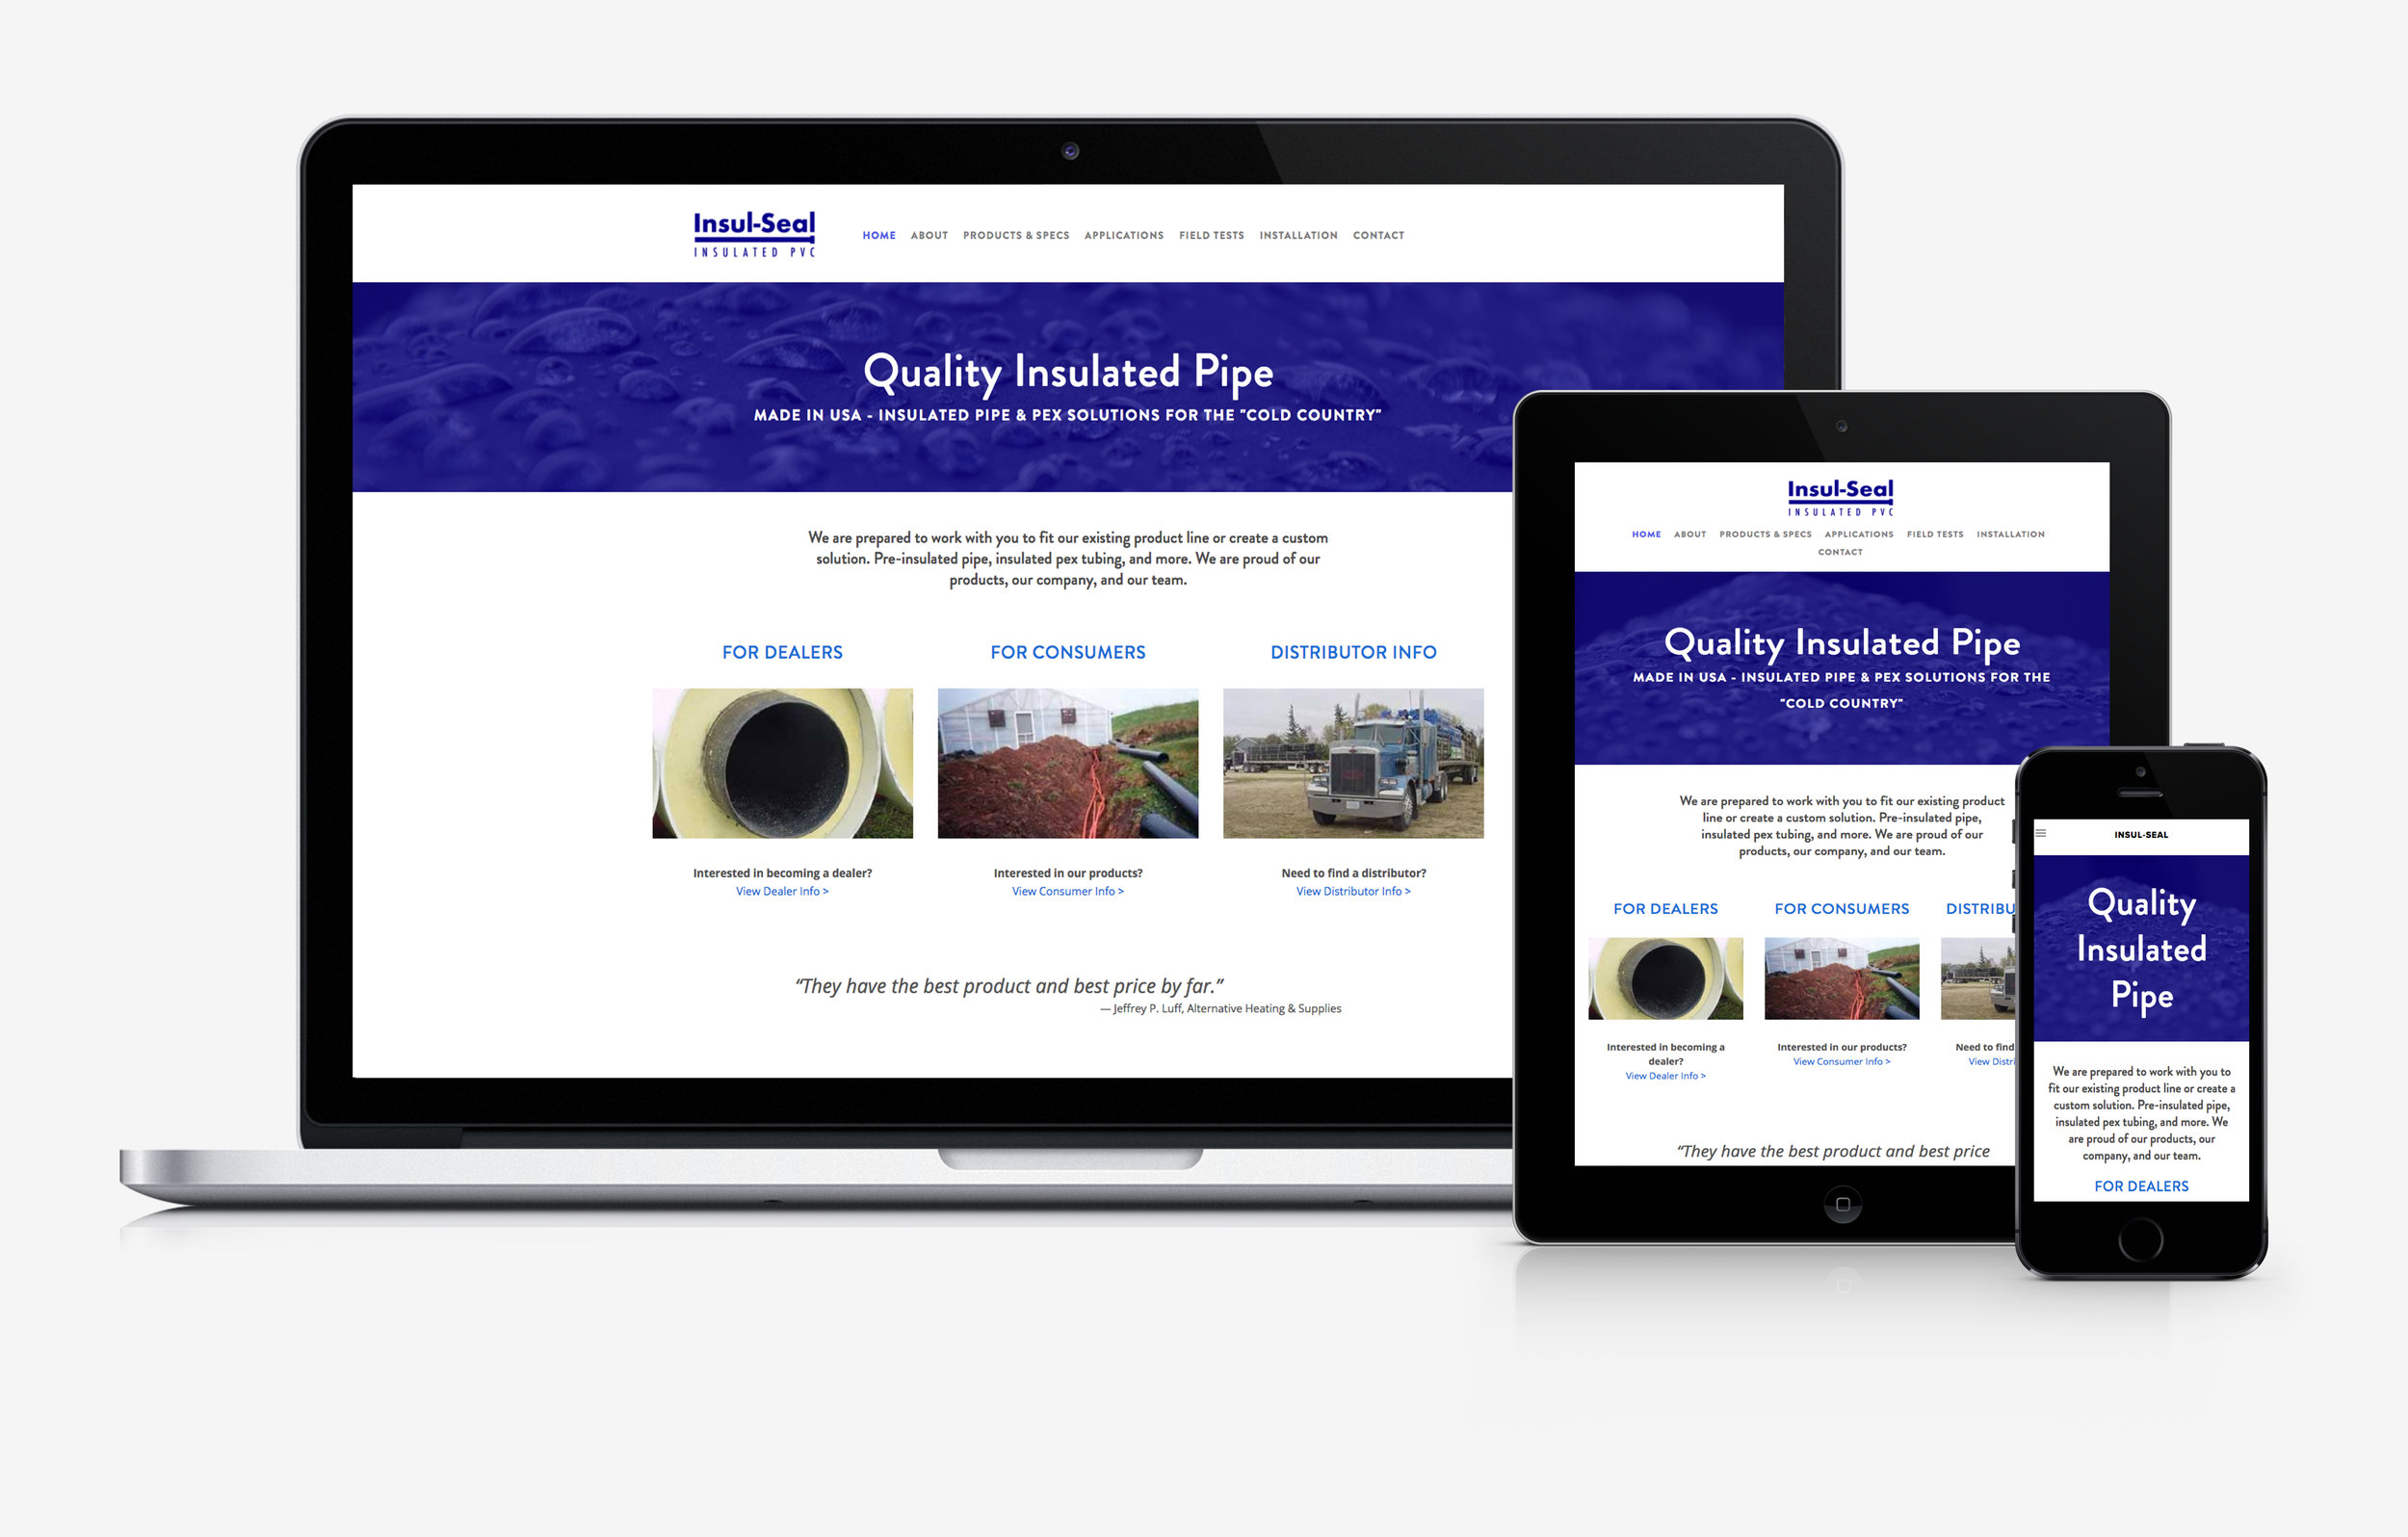 PixelPress_Responsive_Mockup_Insul-Seal-insulated-pipe-solutions